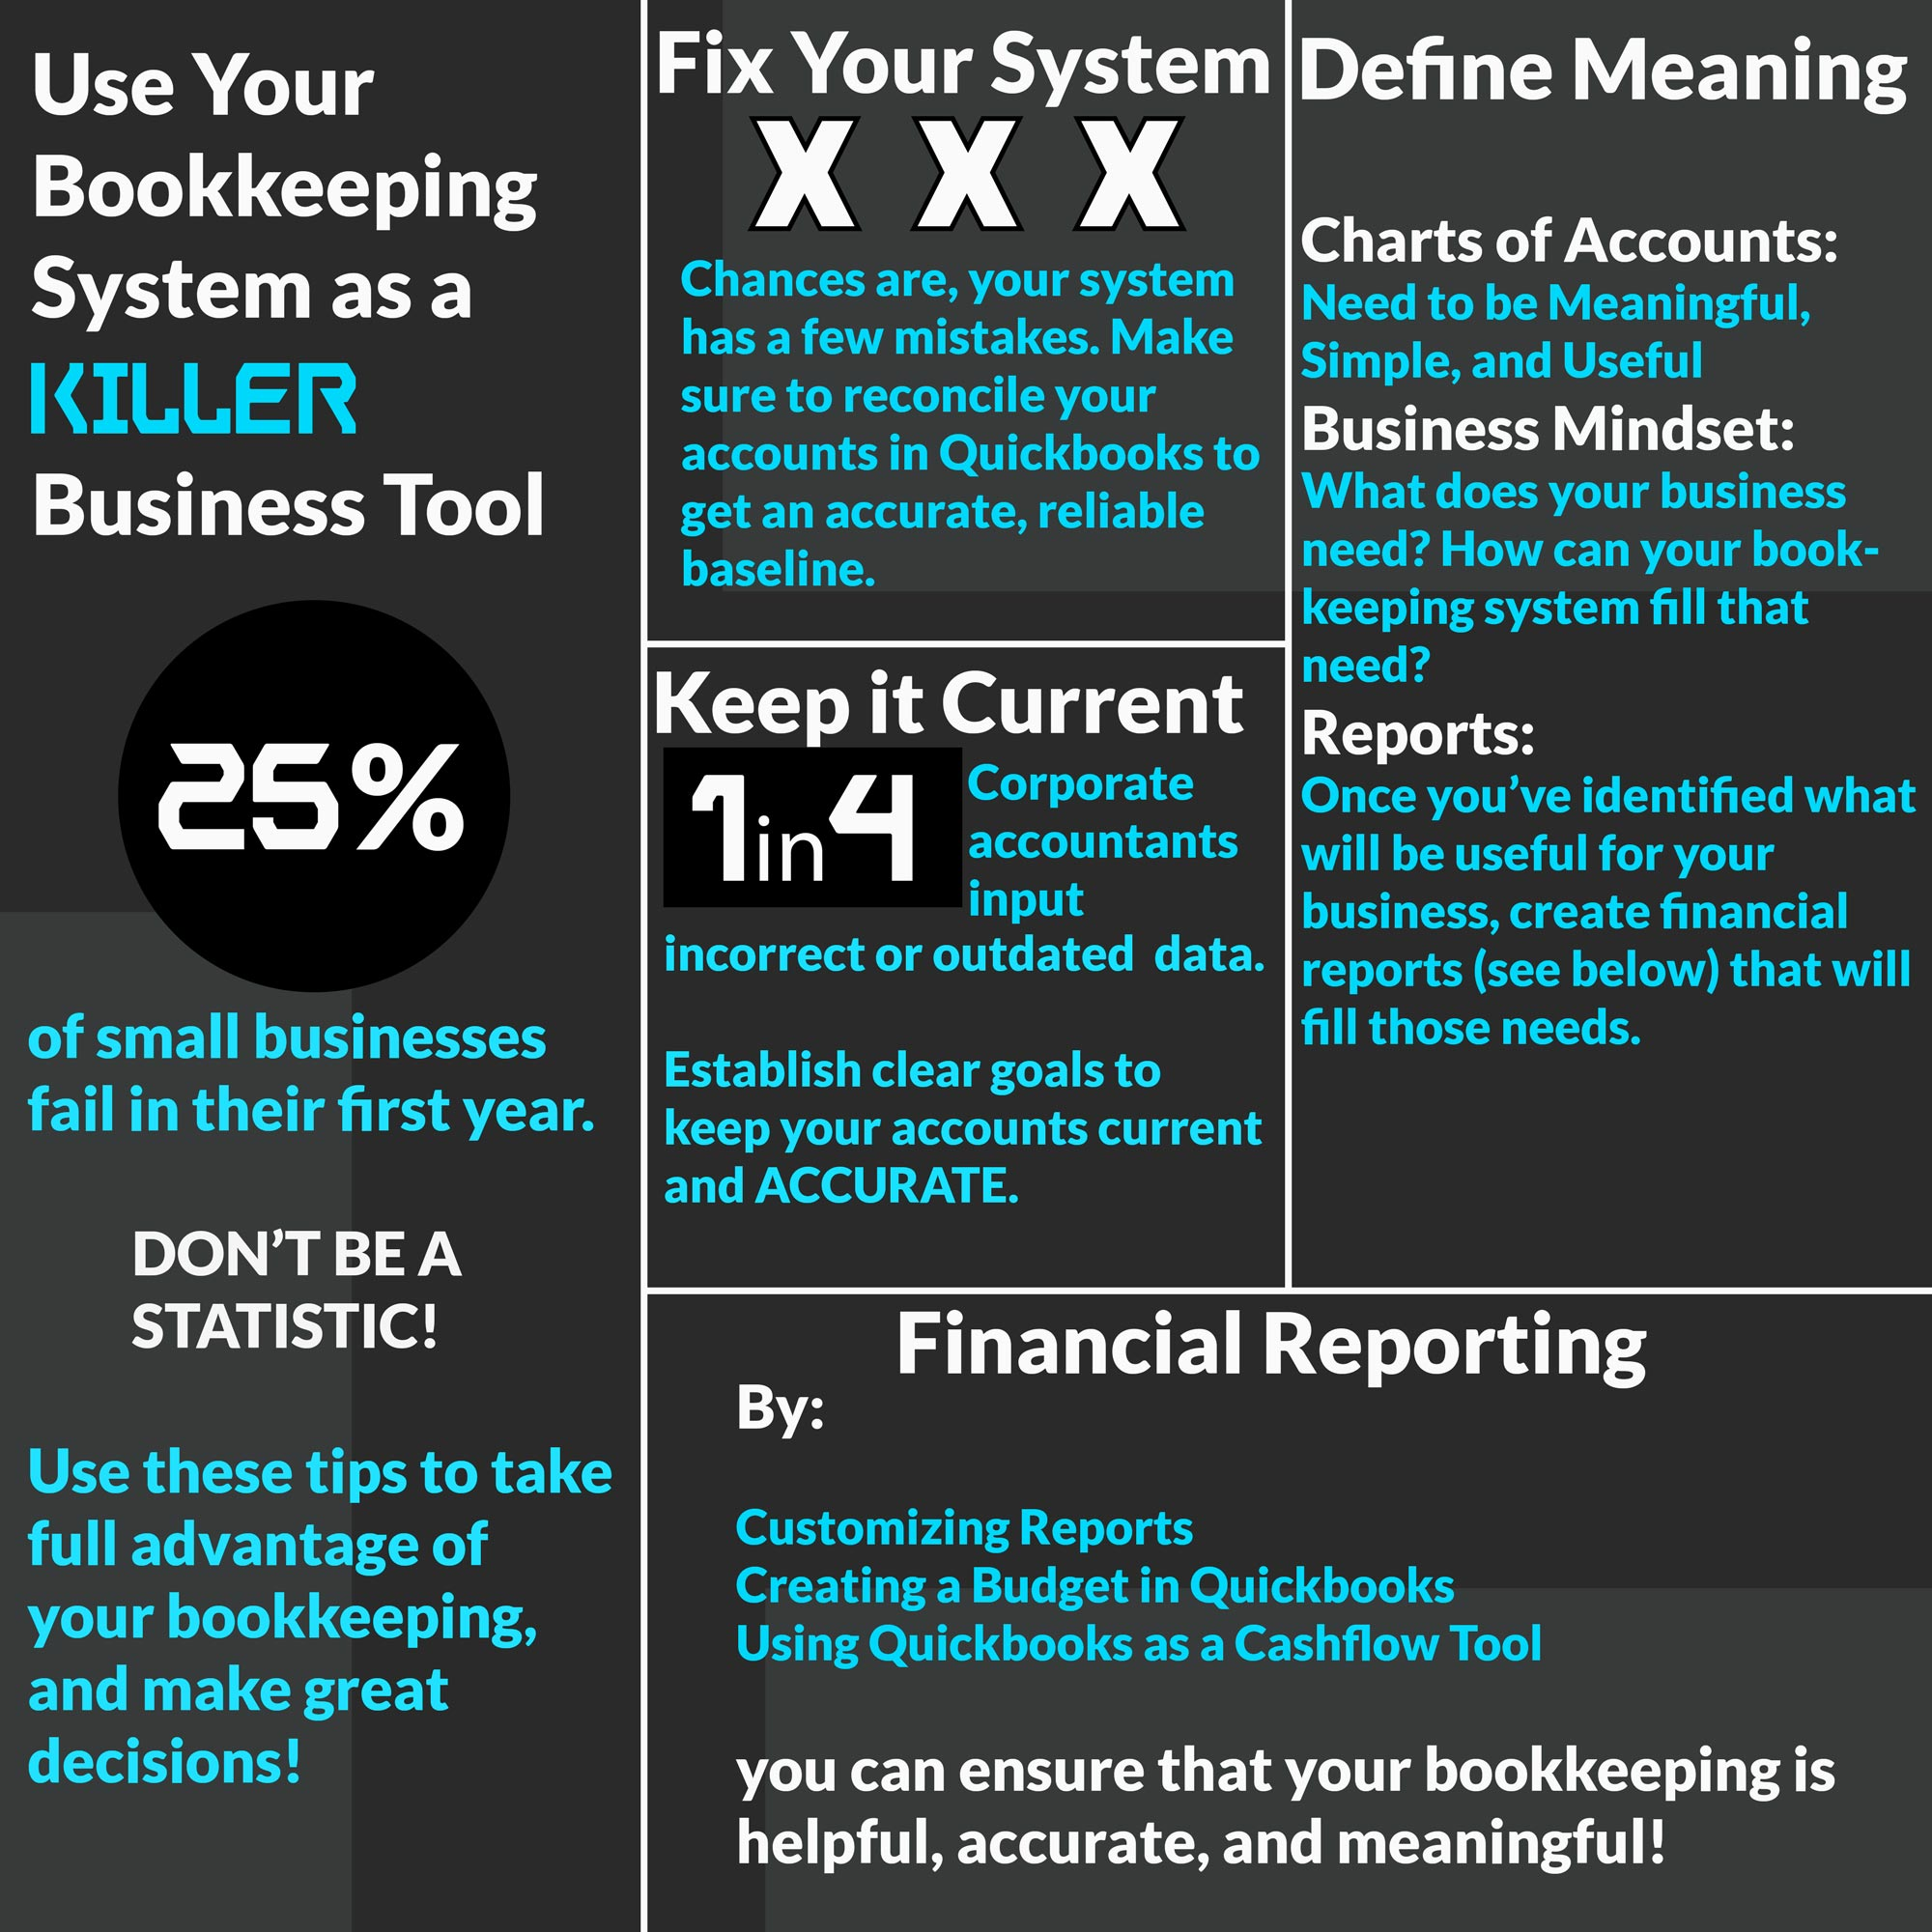 Outscoured bookkeeping system benefits